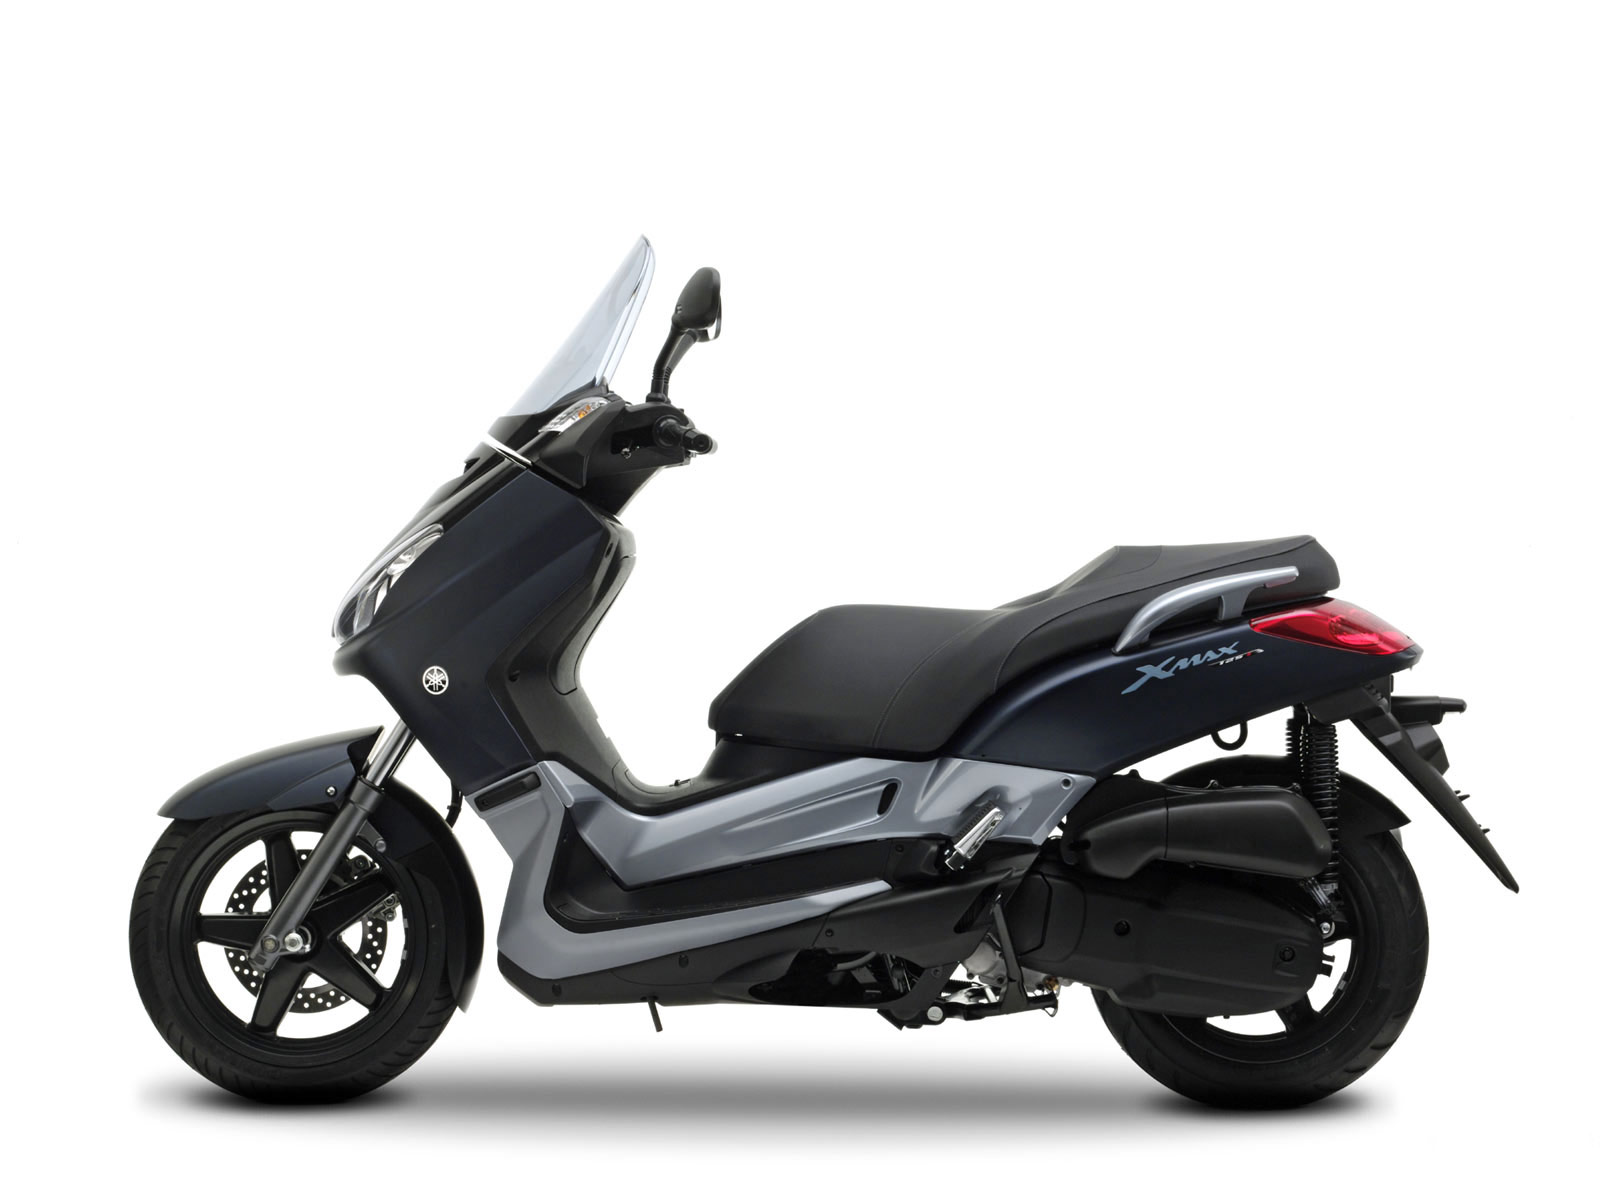 2008 yamaha x max 125 pictures specifications. Black Bedroom Furniture Sets. Home Design Ideas